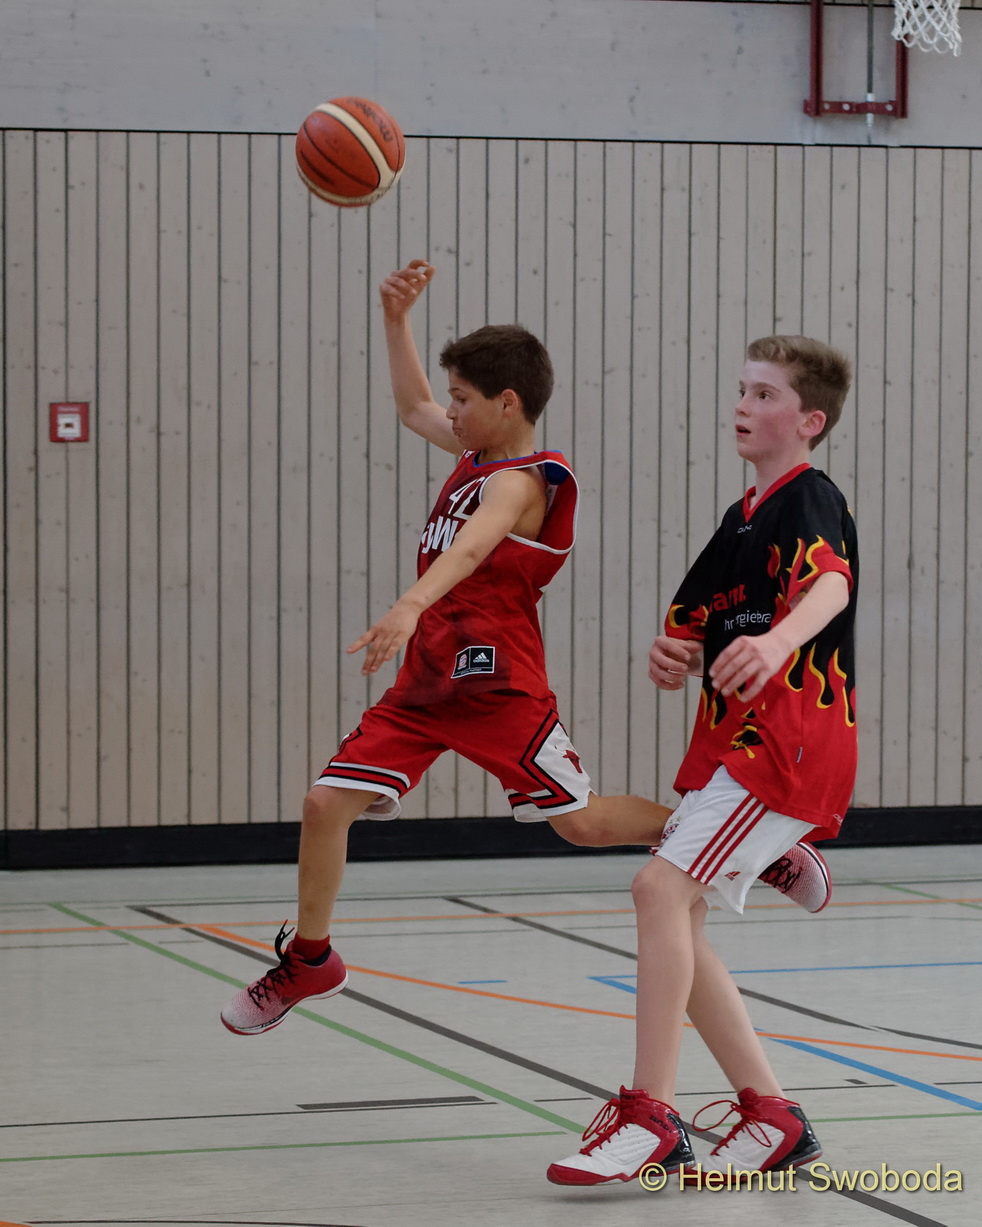 d170402-163235000-100-basketball_weilheim-mixed-turnier_33657284812_o